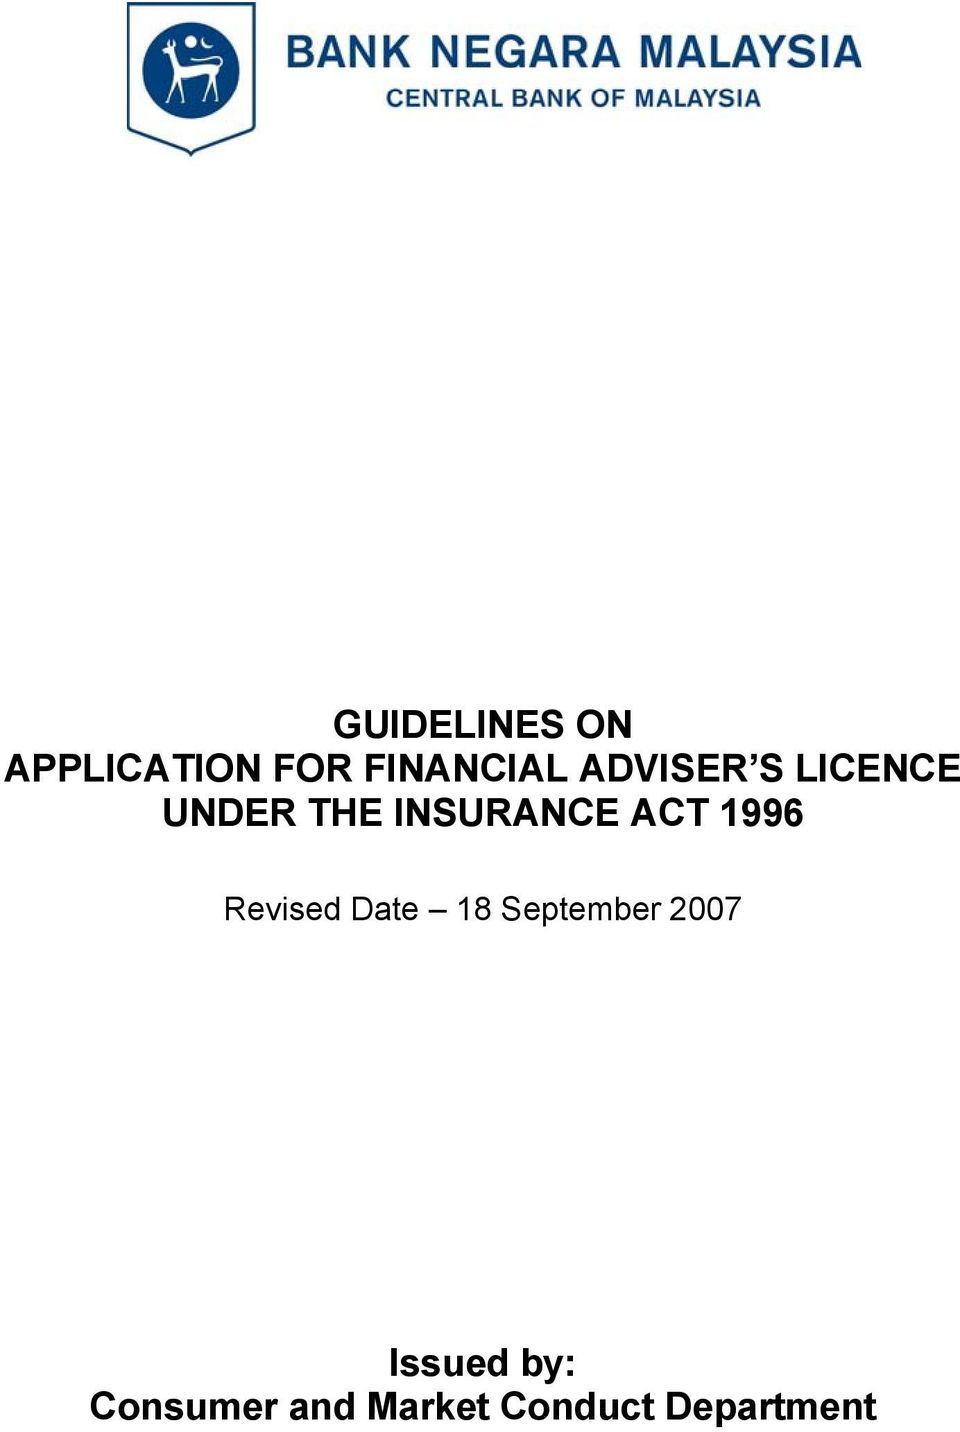 1996 Revised Date 18 September 2007